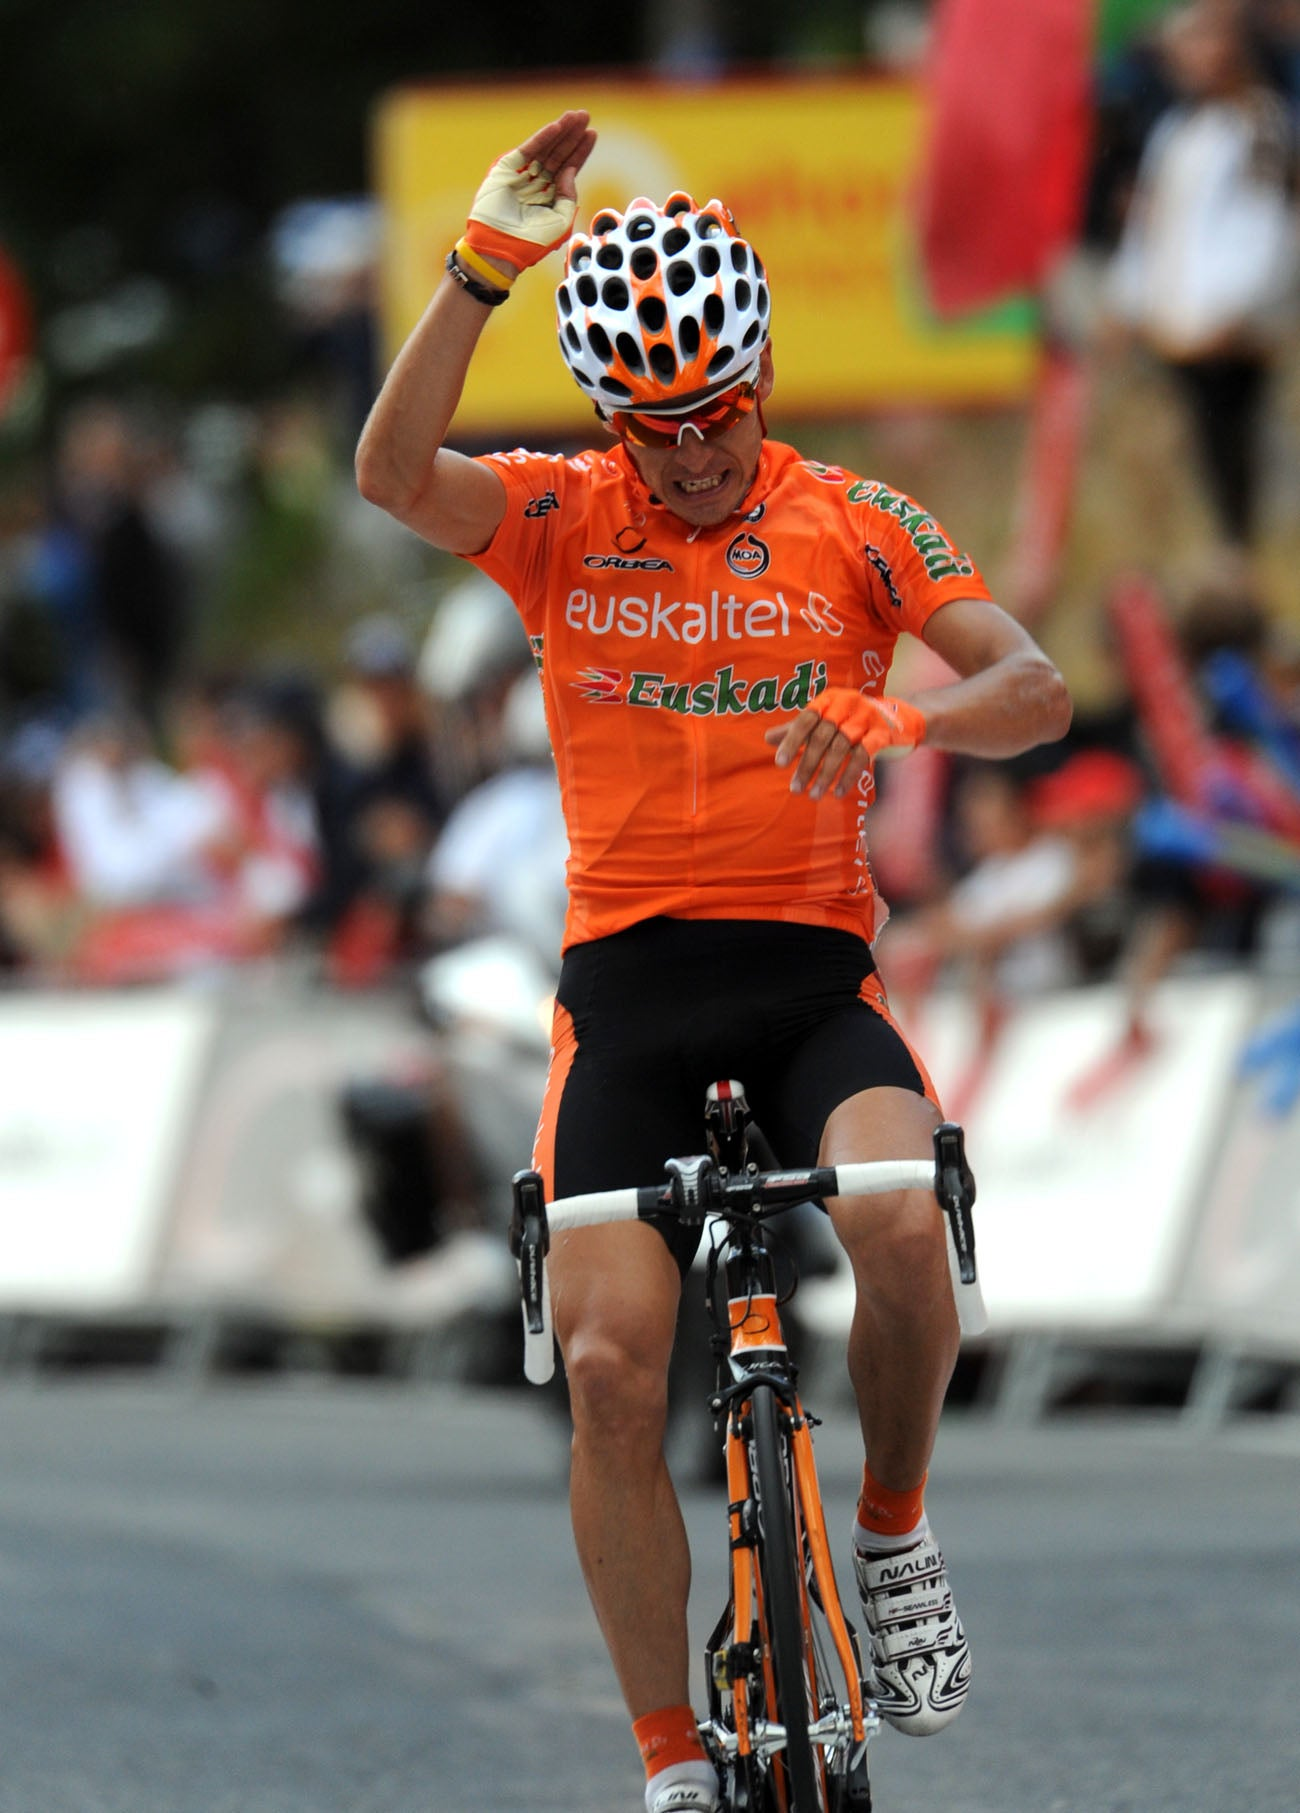 2010 Vuelta a Espana, stage 11: Igor Anton fights his way to a stage win and back into the lead.